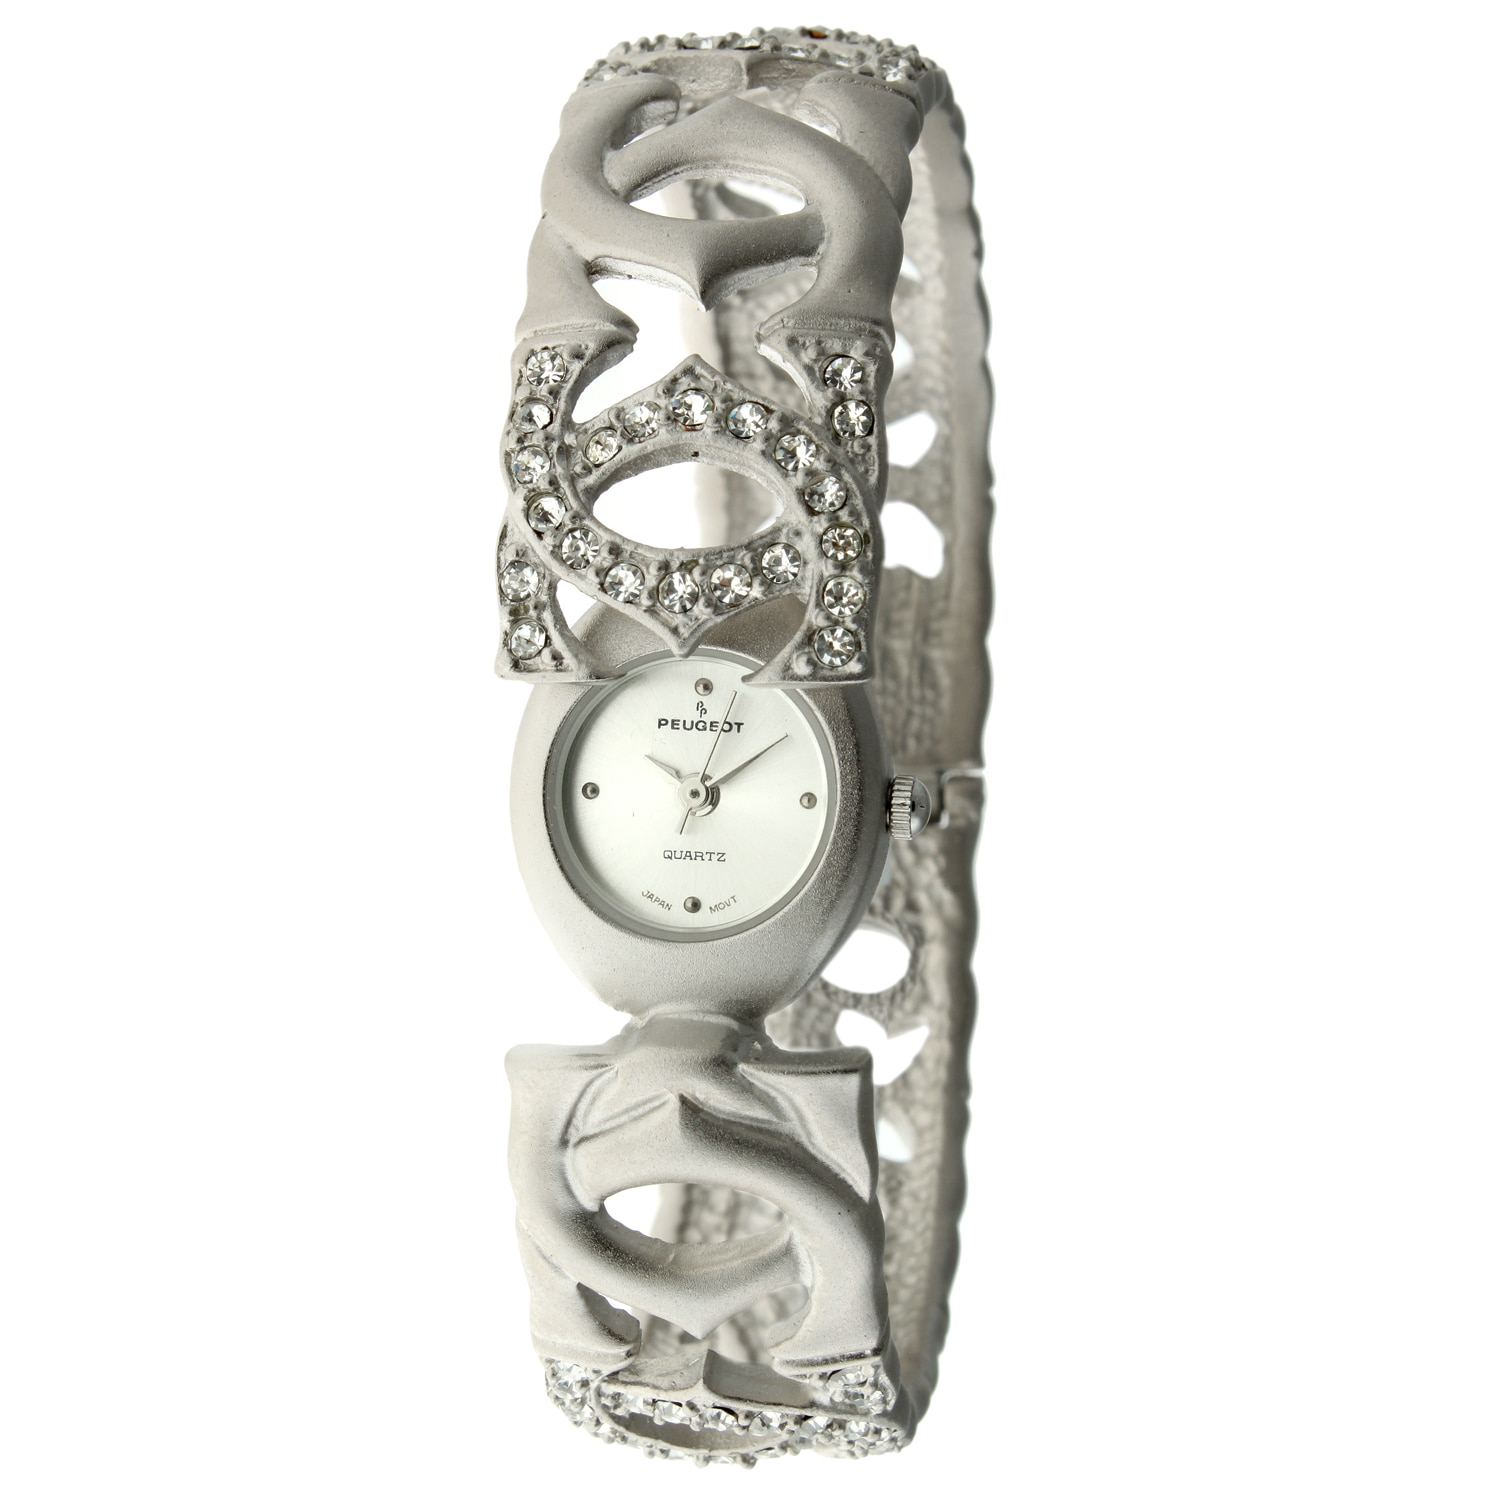 Peugeot Women's Antique Silver Matte Bangle Watch